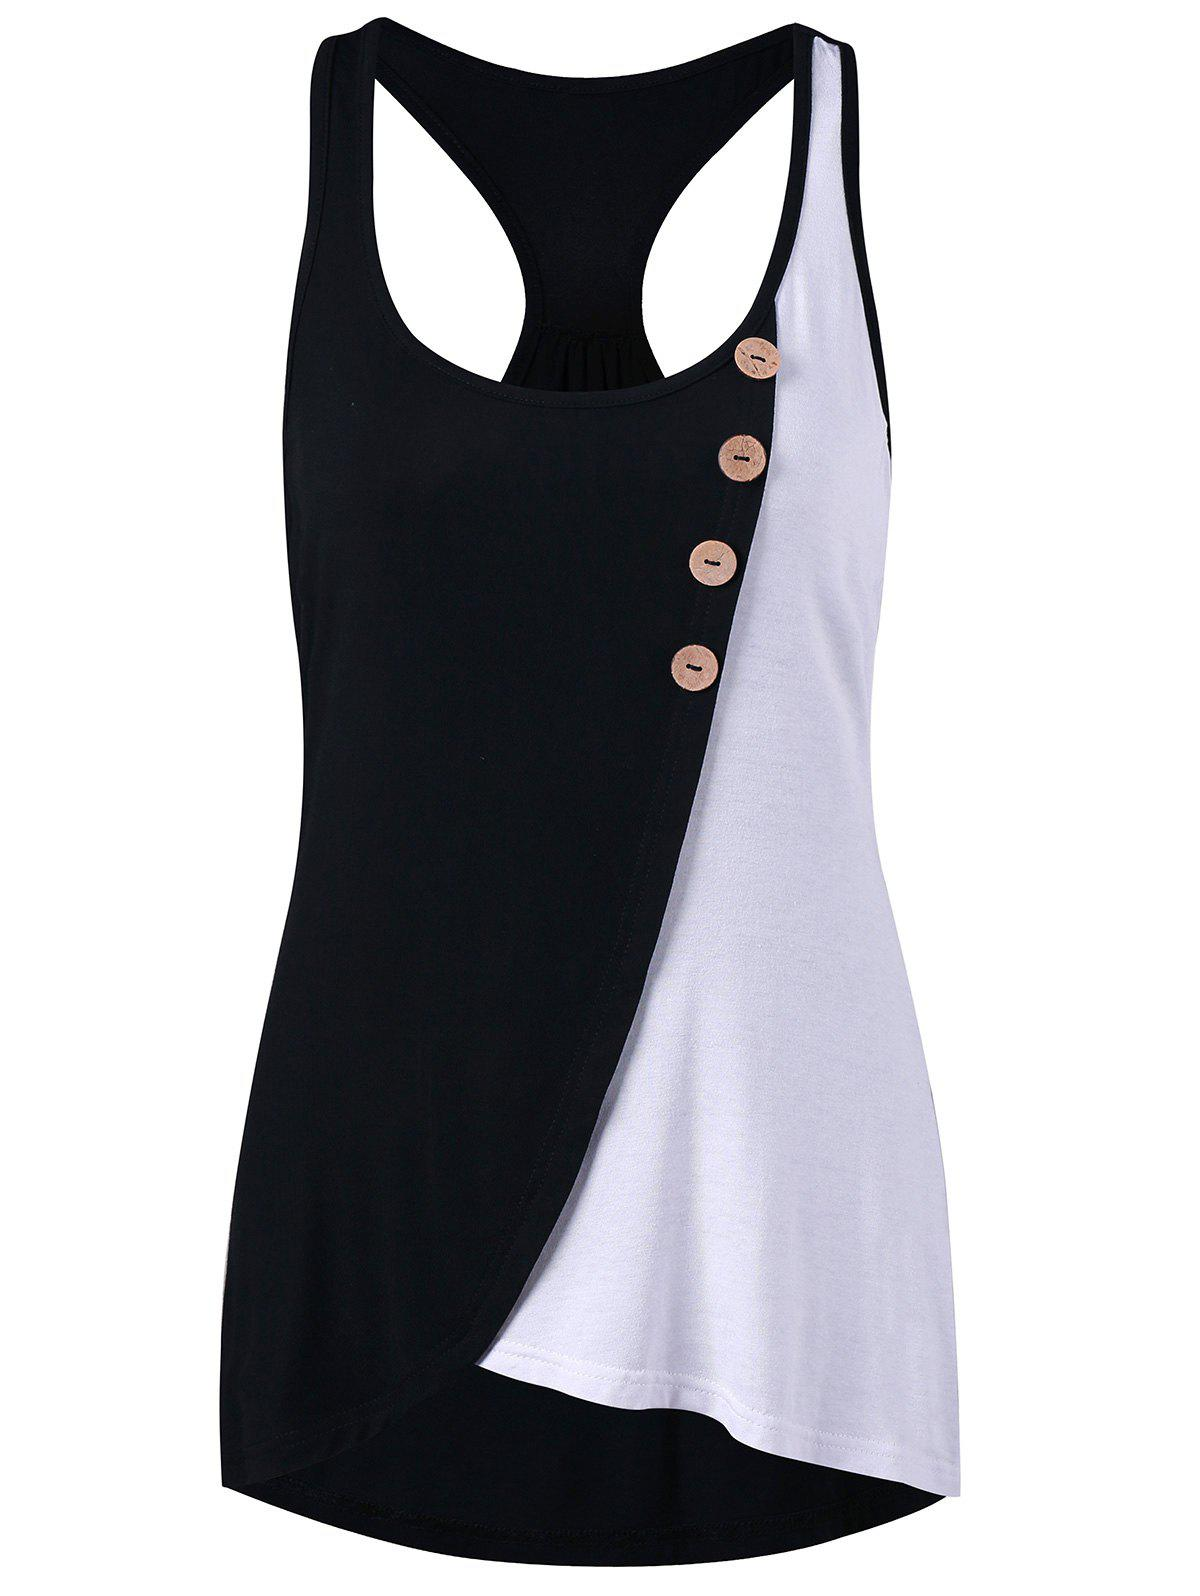 Color Contrast Racerback Tank Top casual graphic racerback tank top